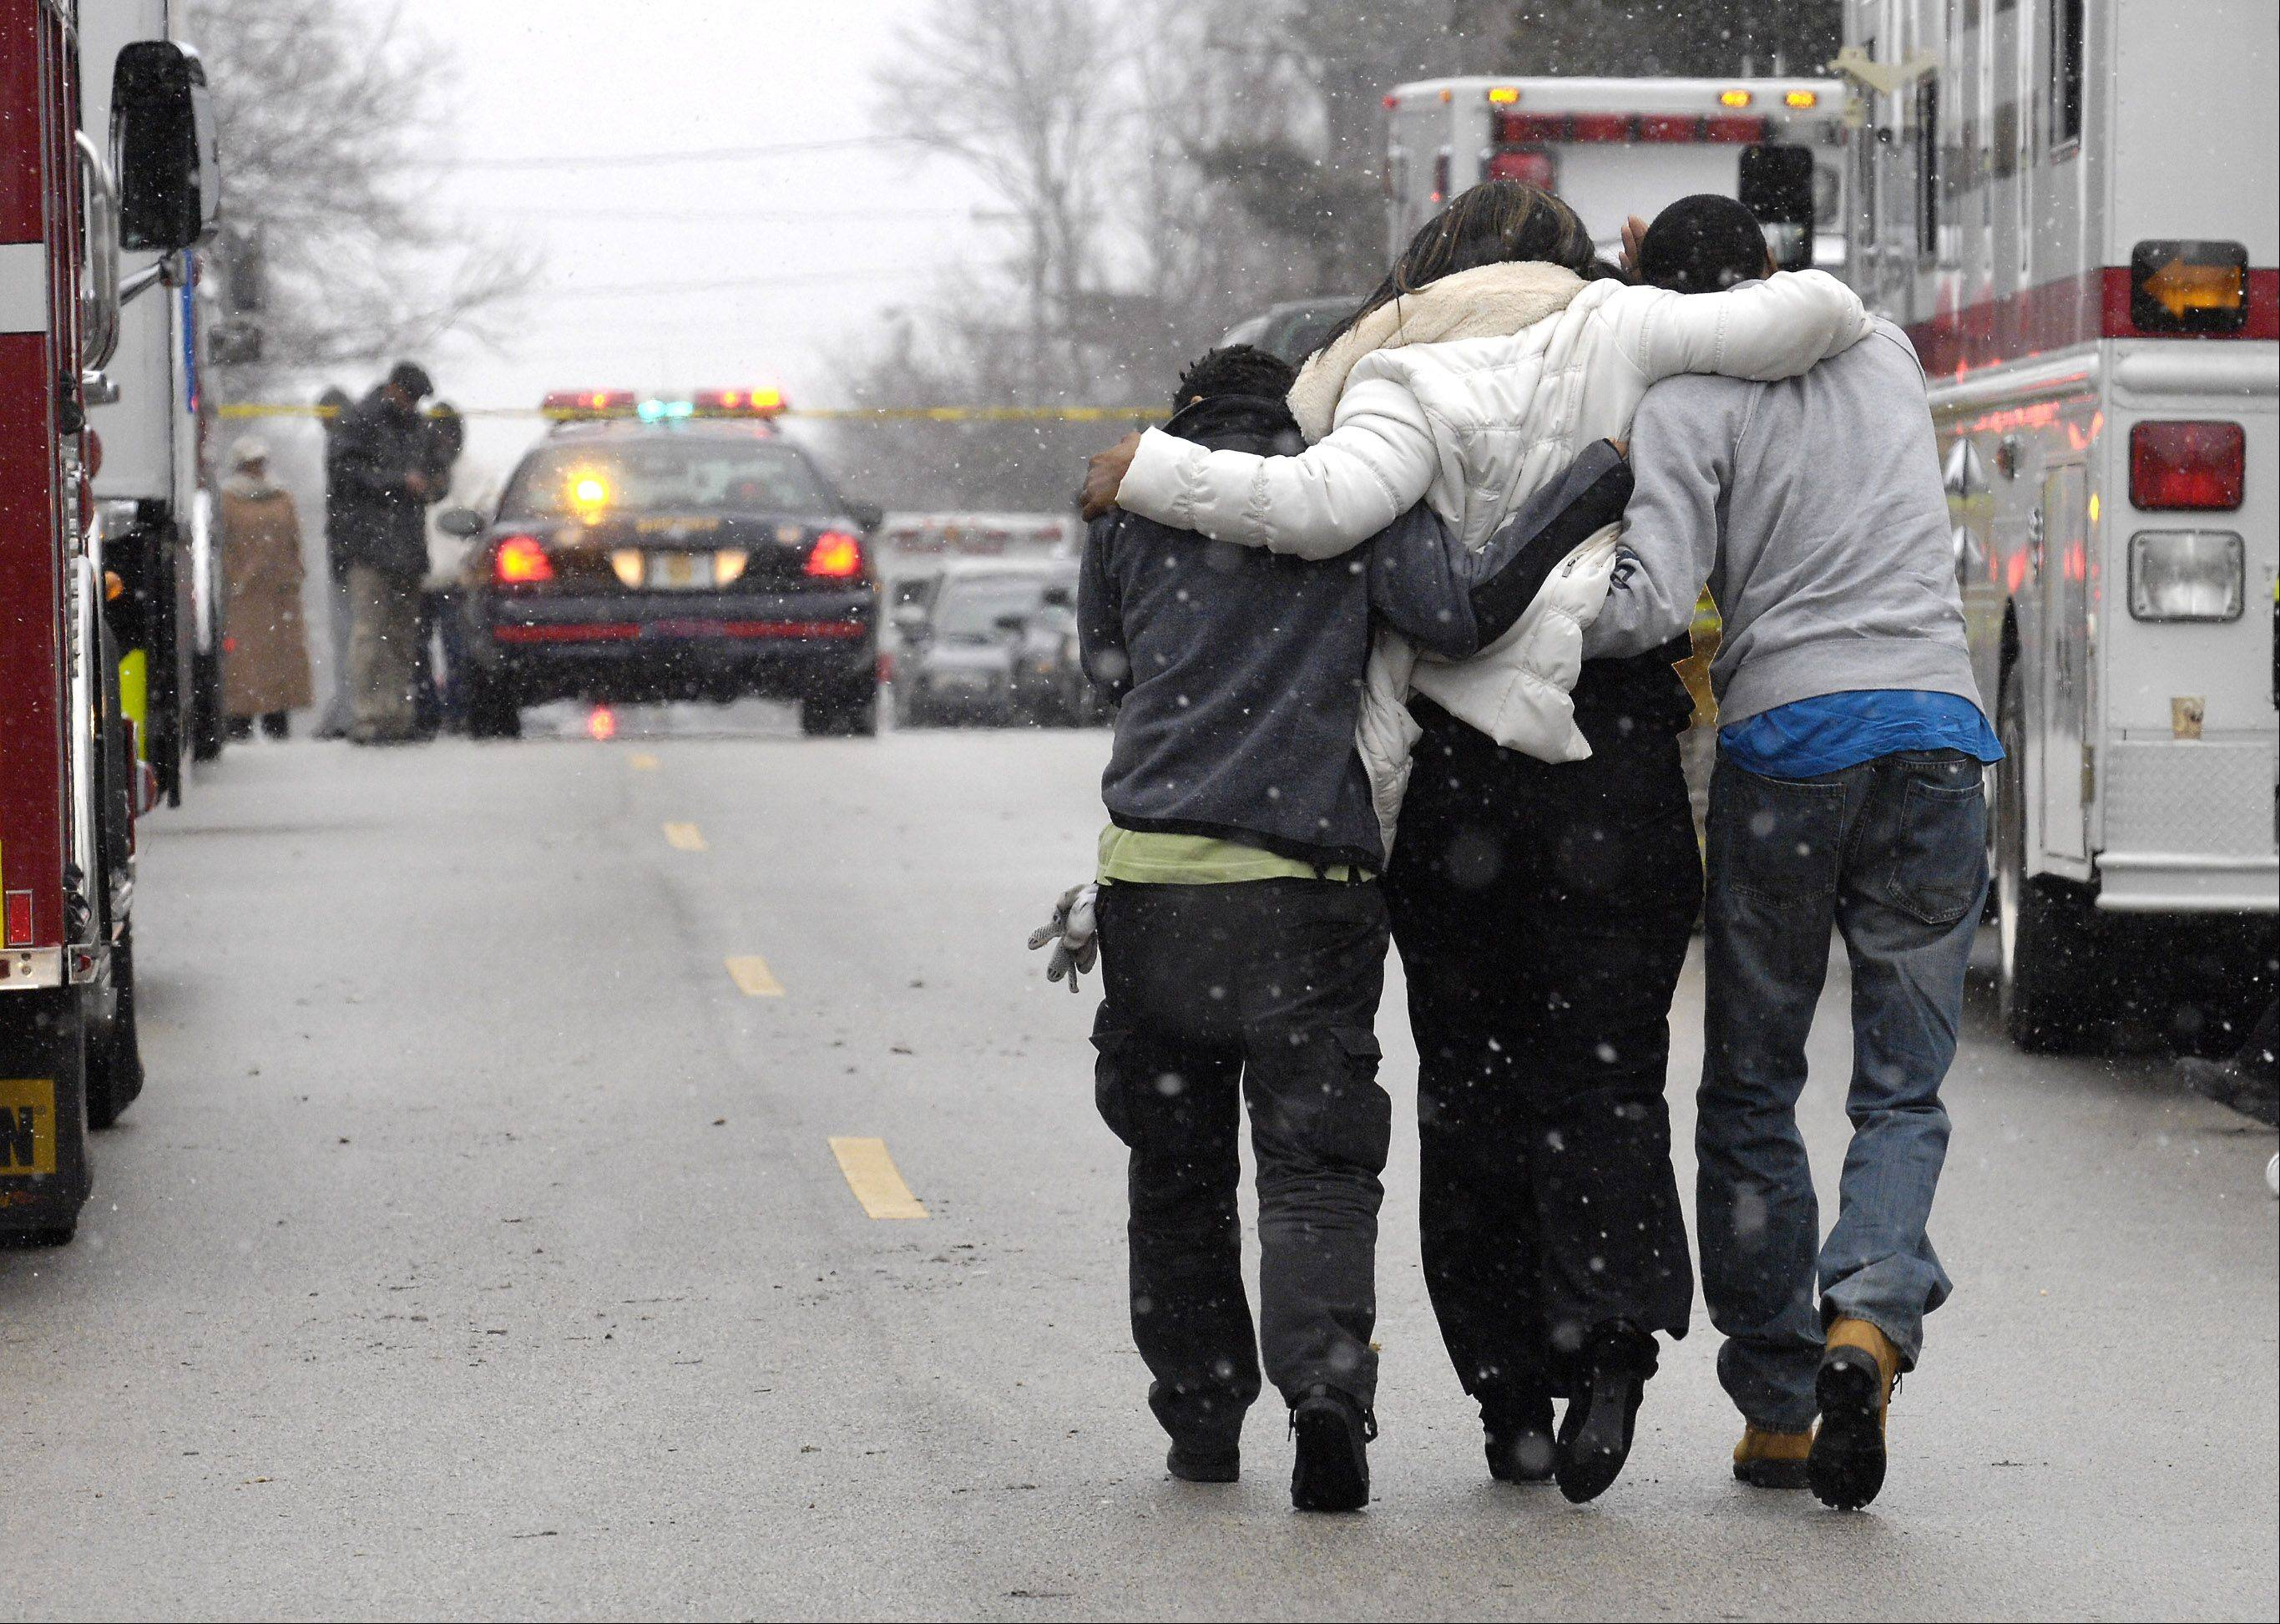 Family members arrive at the scene of a fatal fire on Summit Avenue in unincorporated Dupage County near Oakbrook Terrace. Investigators from the DuPage County Sheriff, ATF, and local fire departments were on the scene to investigate suspicious fatal fire that claimed the lives of four people .